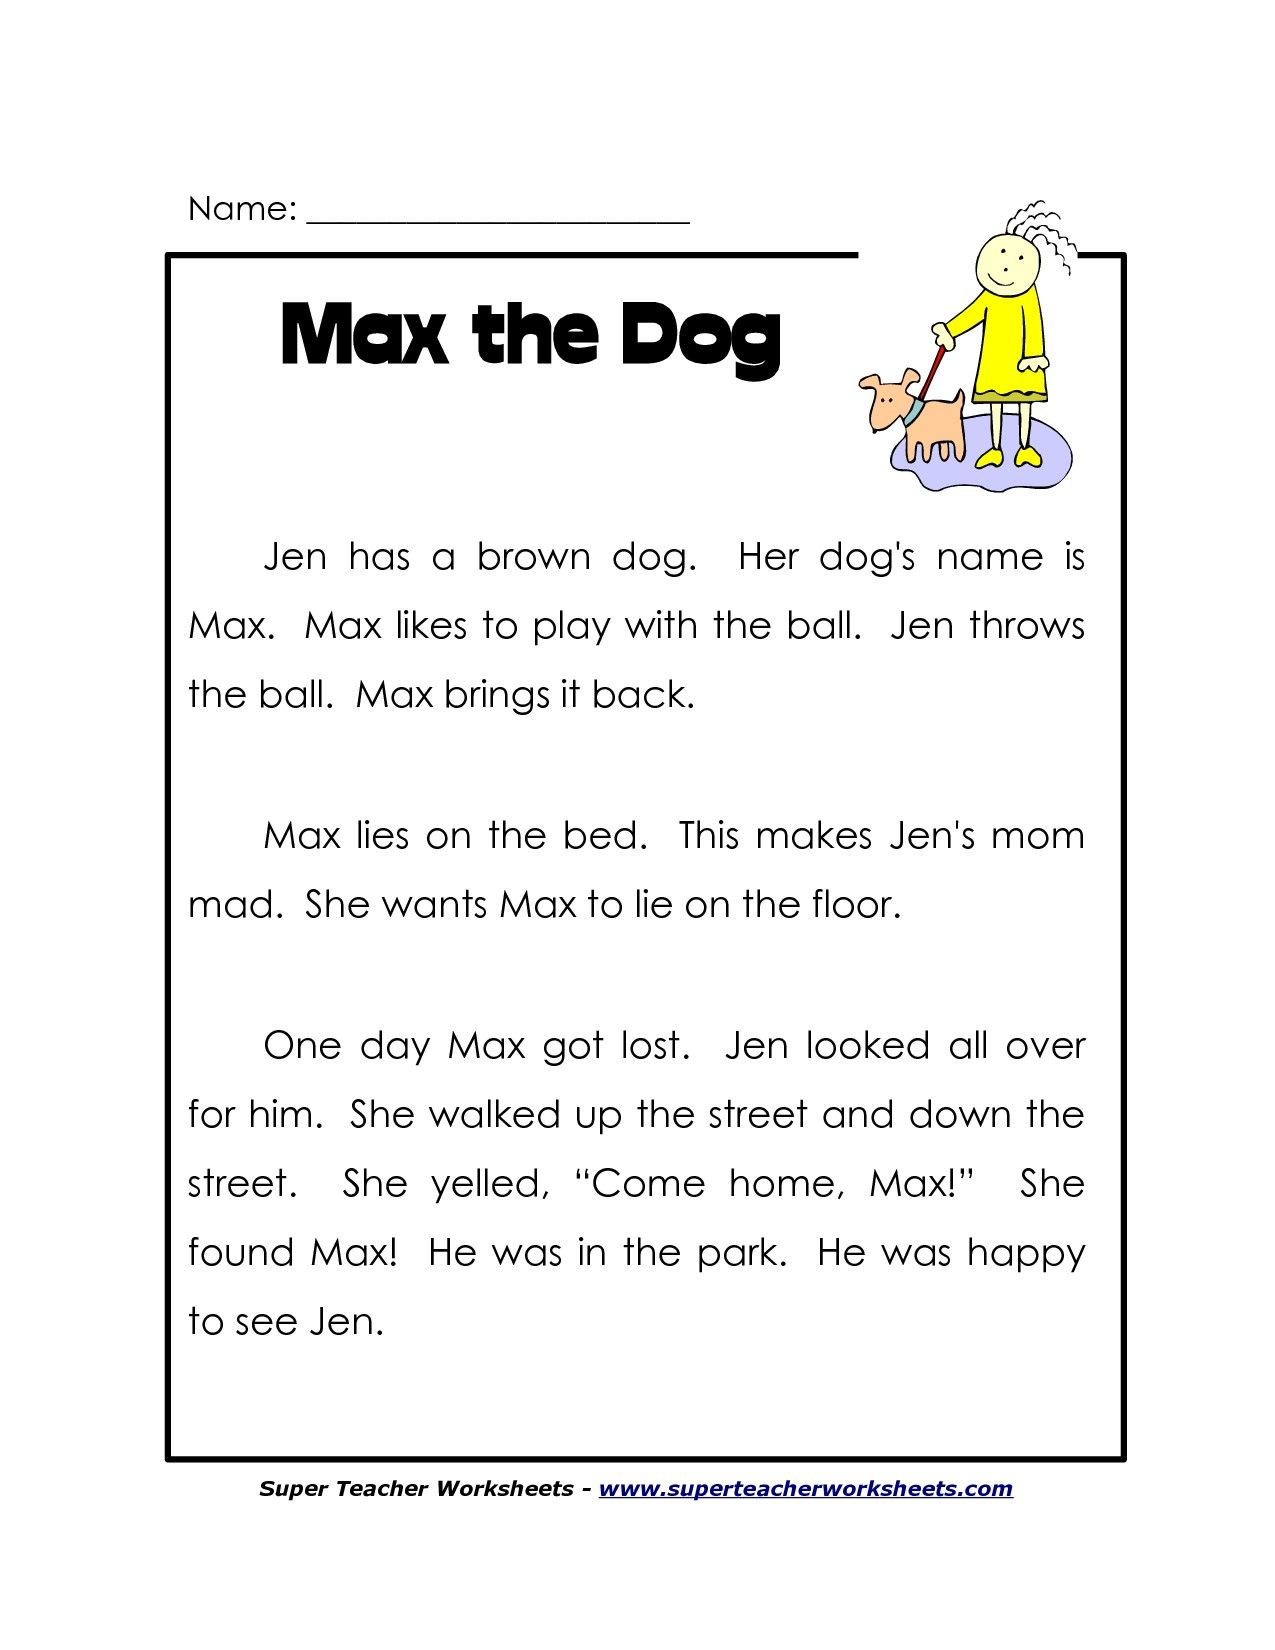 Worksheets Picture Reading Worksheets For Grade 1 1st grade reading worksheets free lots more on superteacherworksheets com